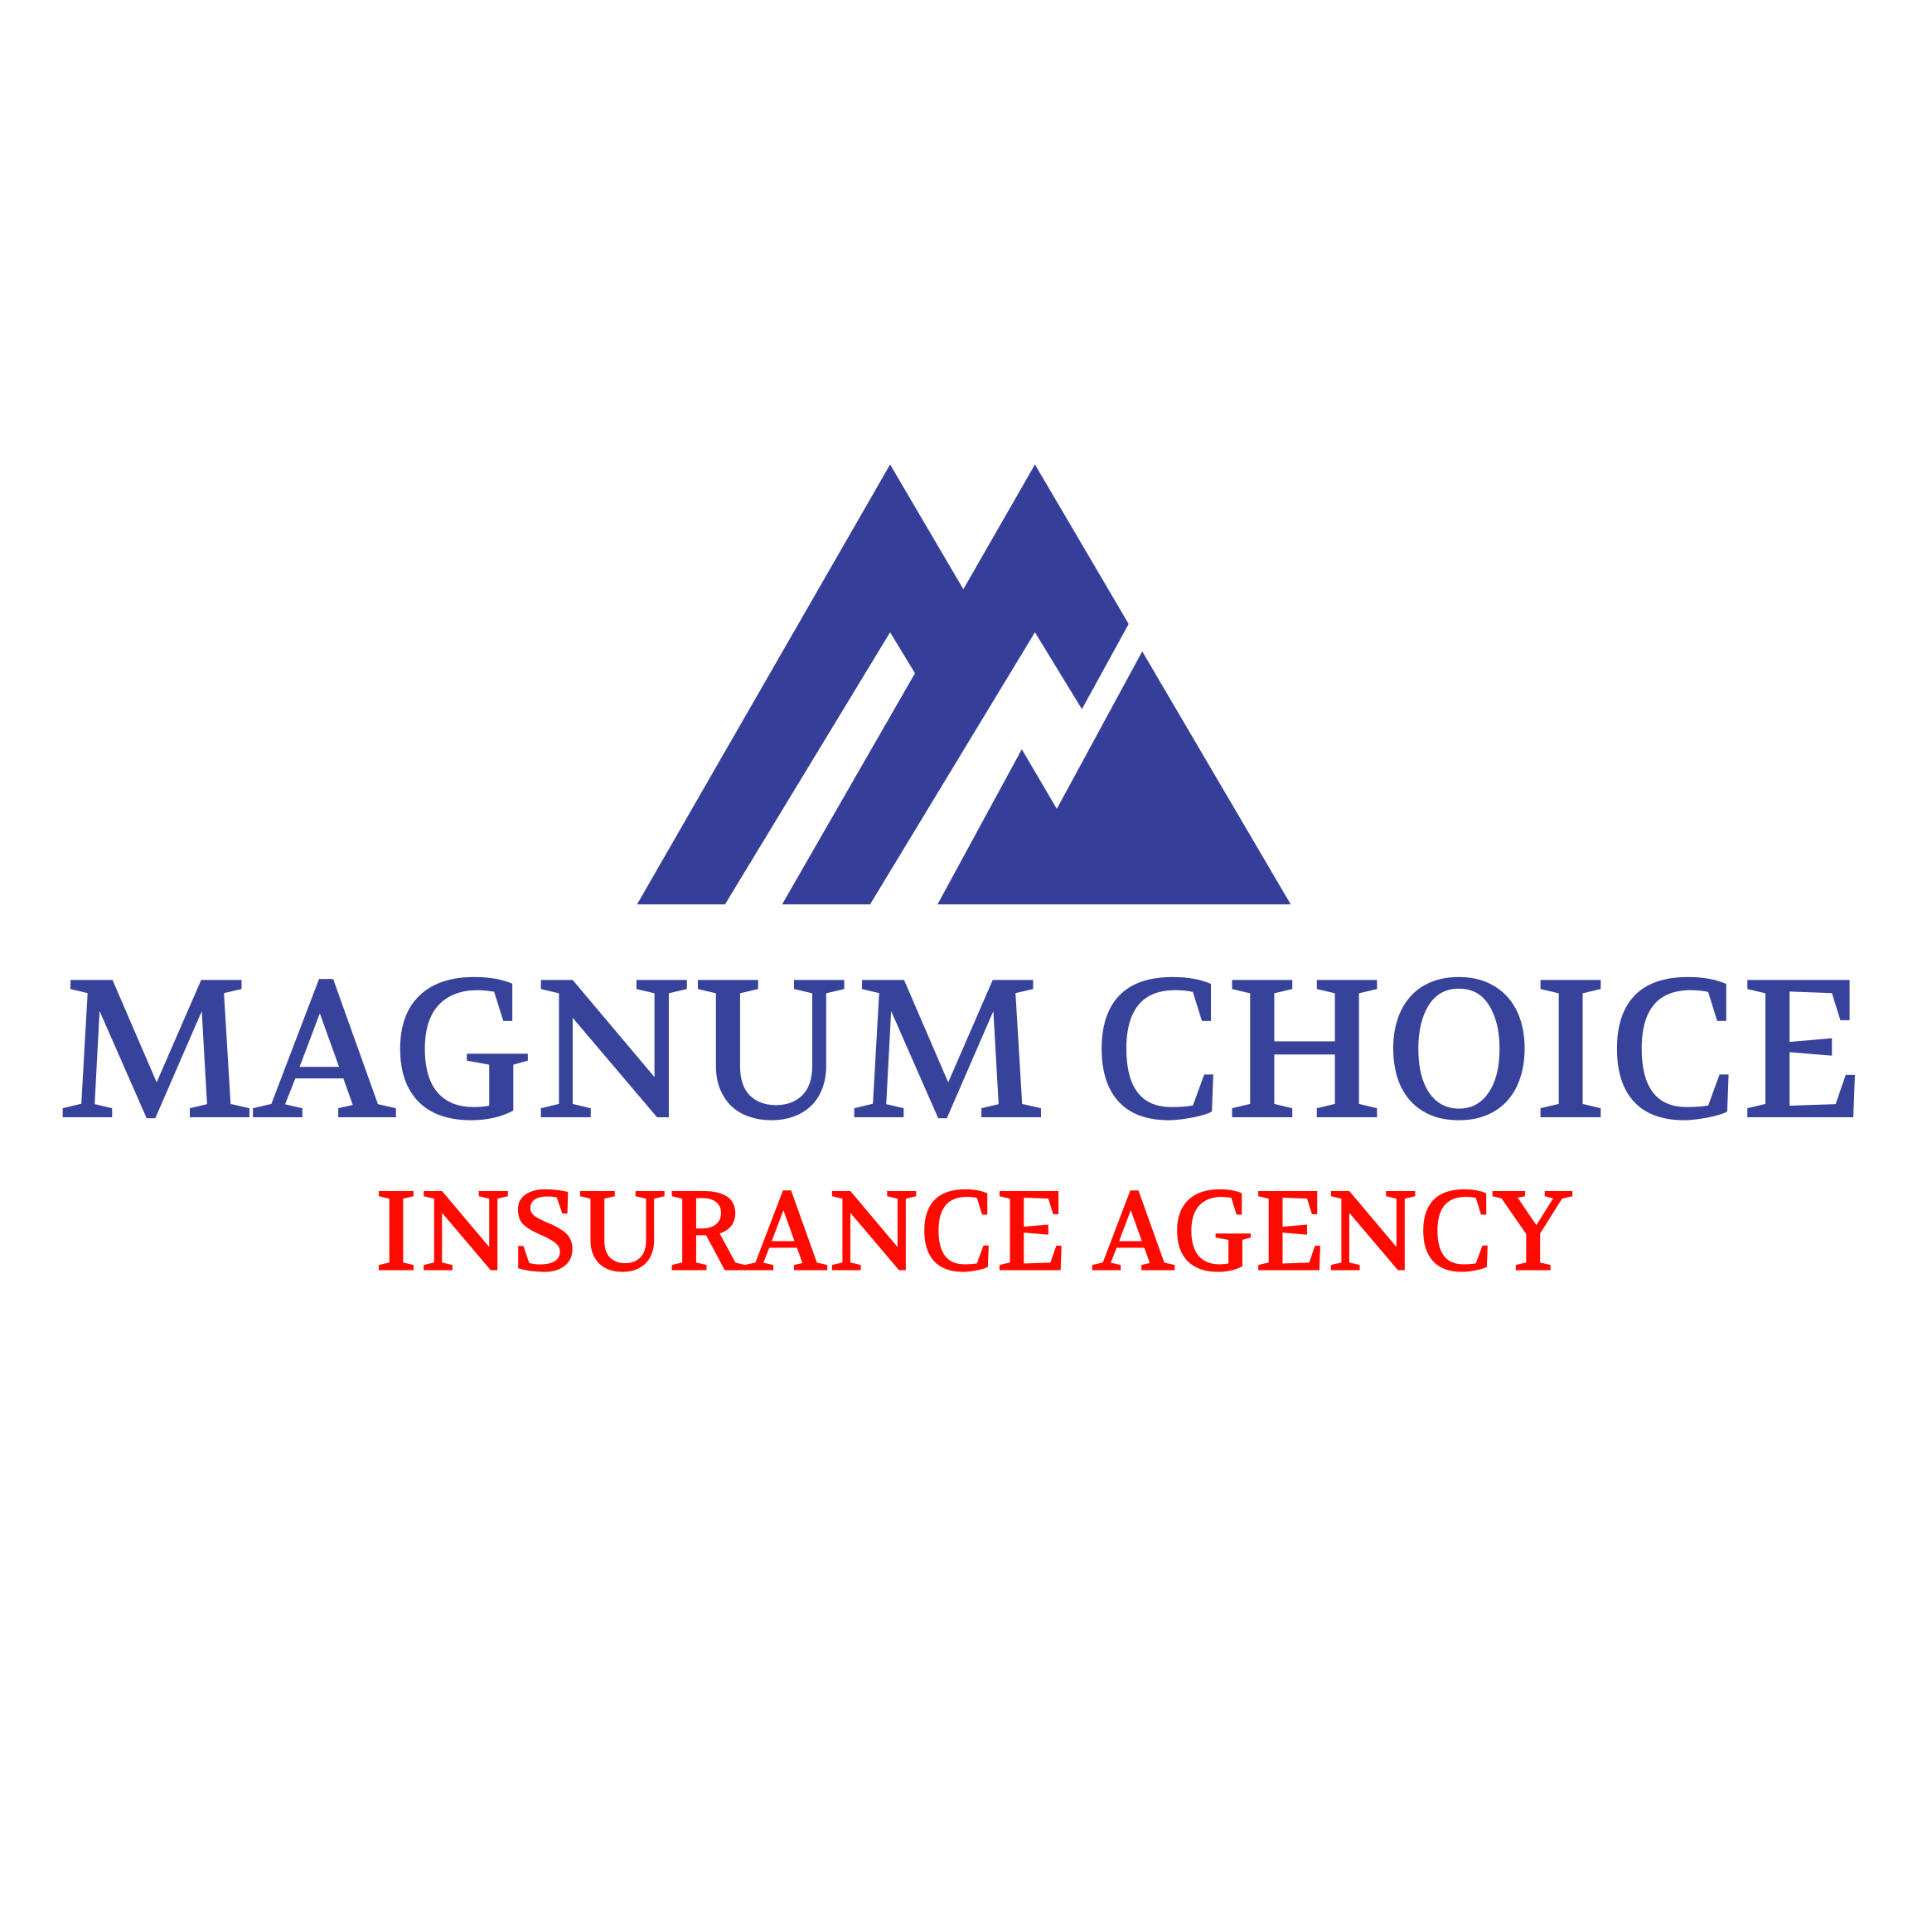 Joseph Qiu Insurance Agency / Magnum Choice Insurance Agency Inc